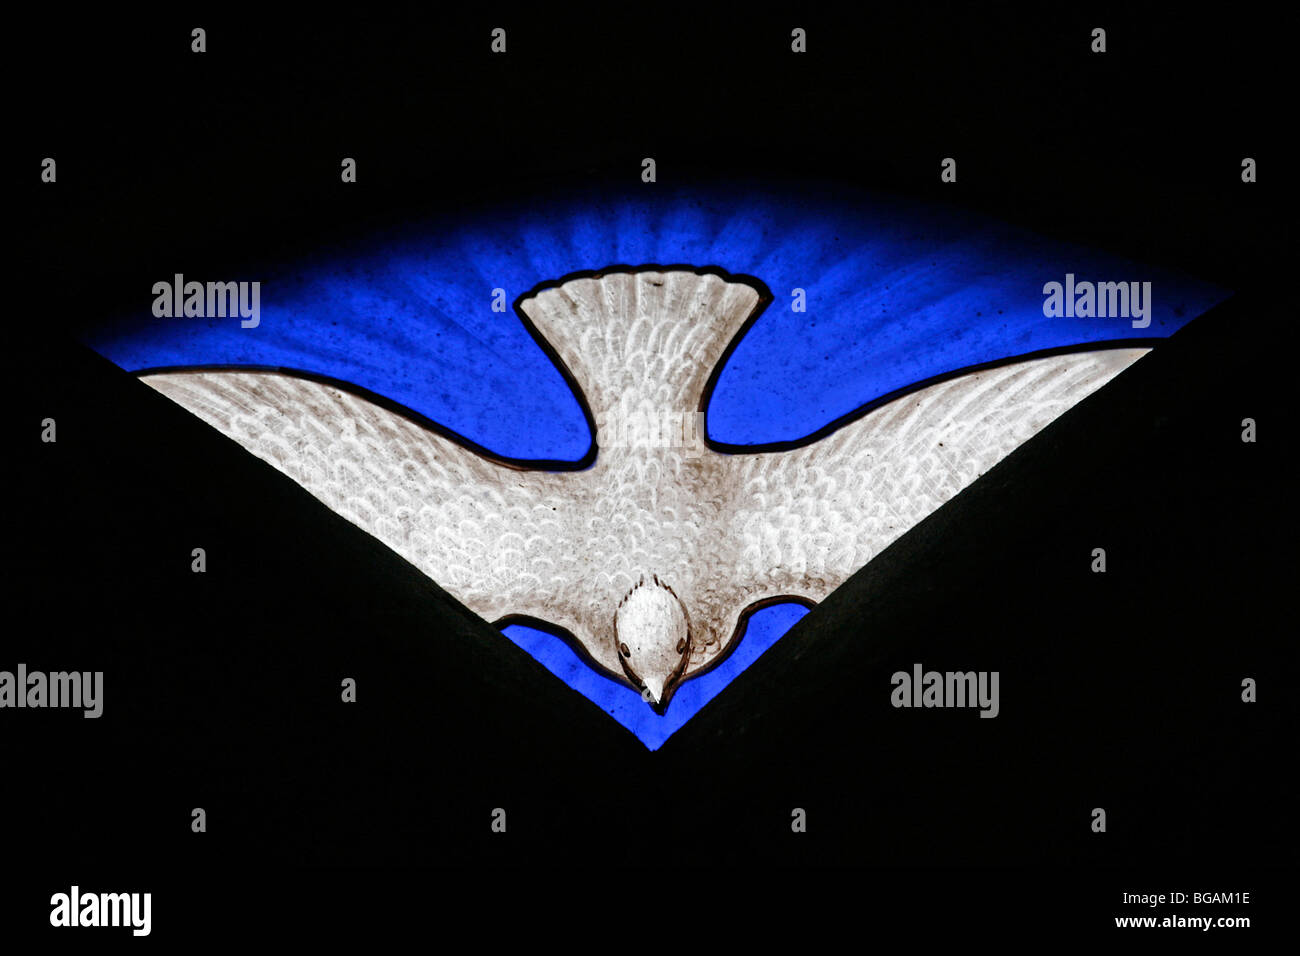 Holy spirit dove stock photos holy spirit dove stock images alamy a stained glass window depicting the dove of the holy spirit st nicholas church biocorpaavc